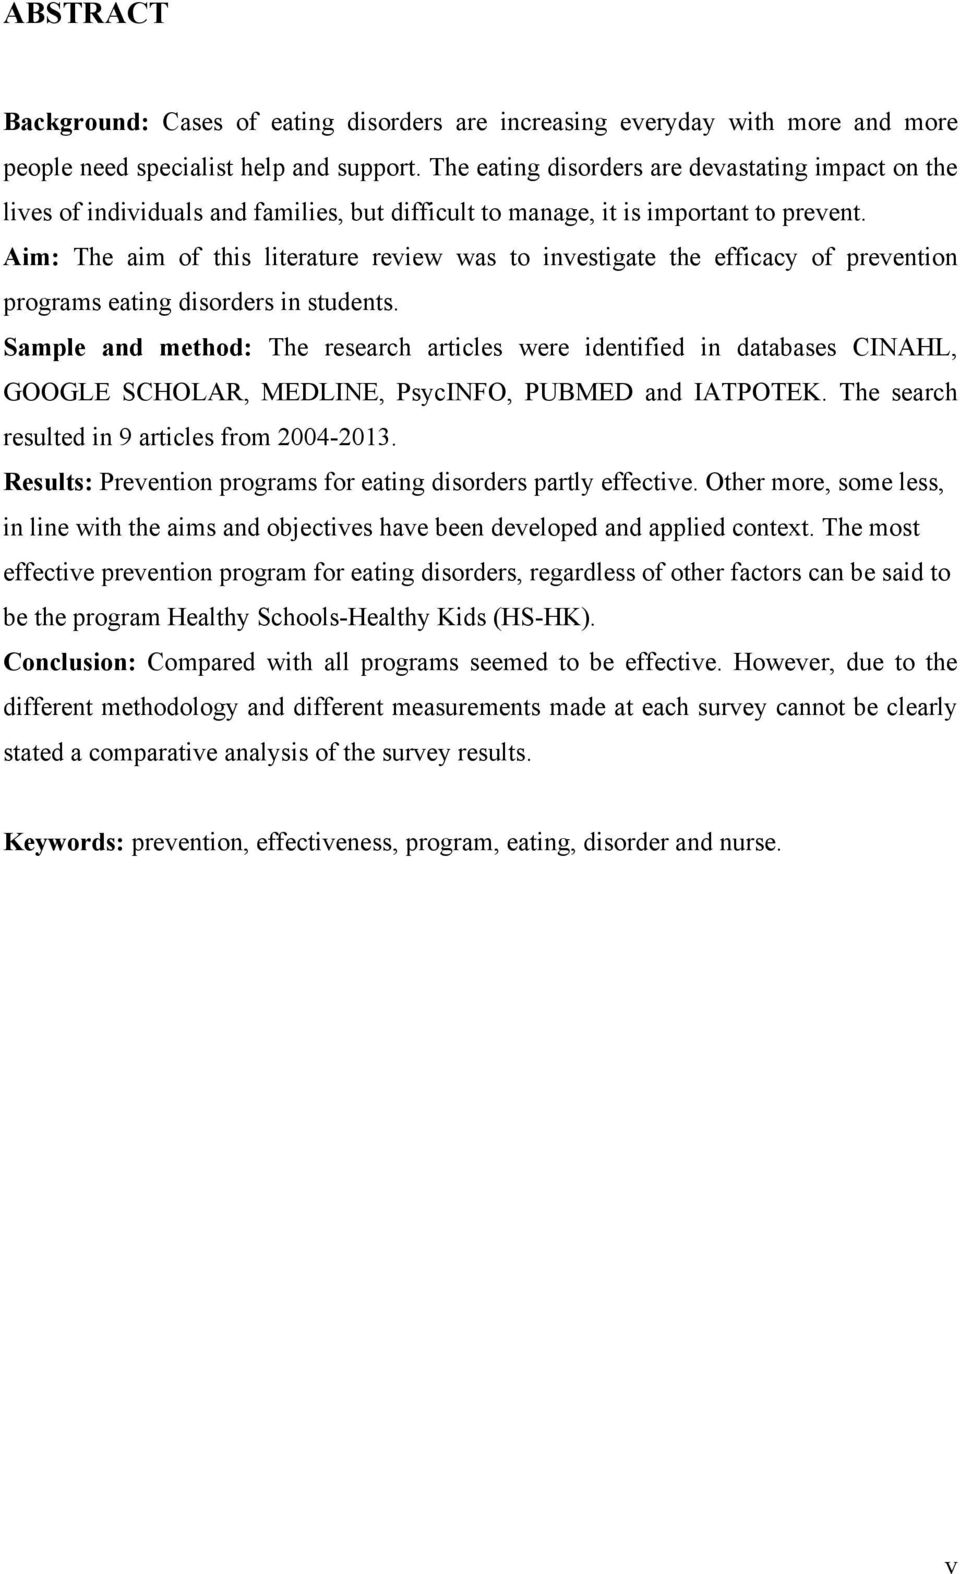 Aim: The aim of this literature review was to investigate the efficacy of prevention programs eating disorders in students.